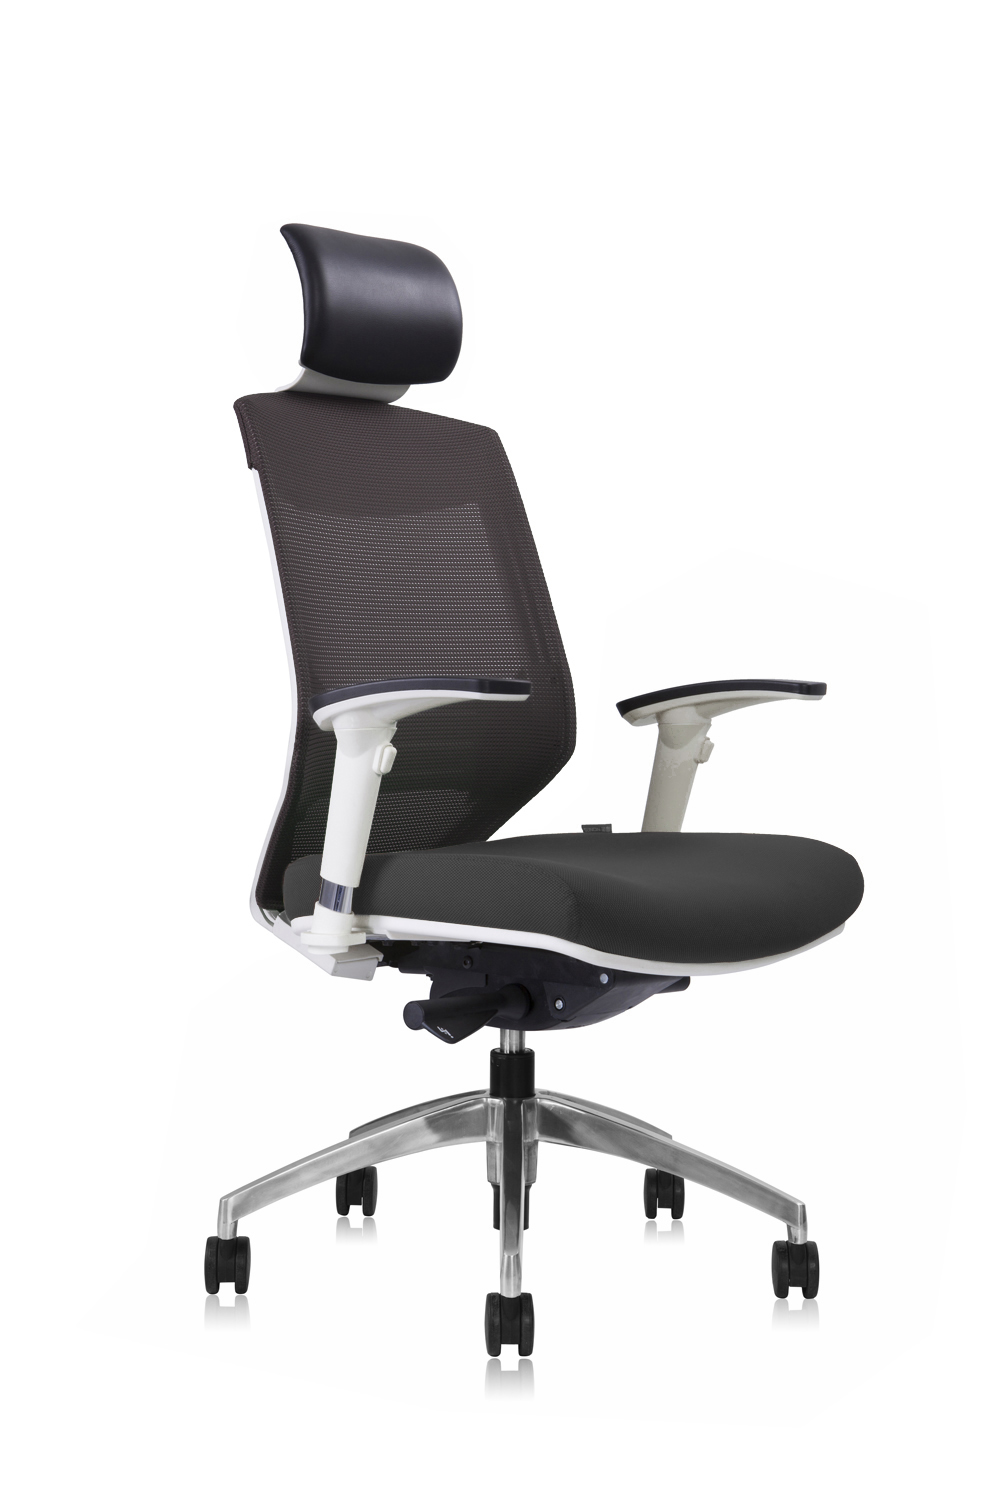 Mesh Fabric Manager Office Chair Adjustable New High Back KTG Mechanism Headrest Gaming Chairs